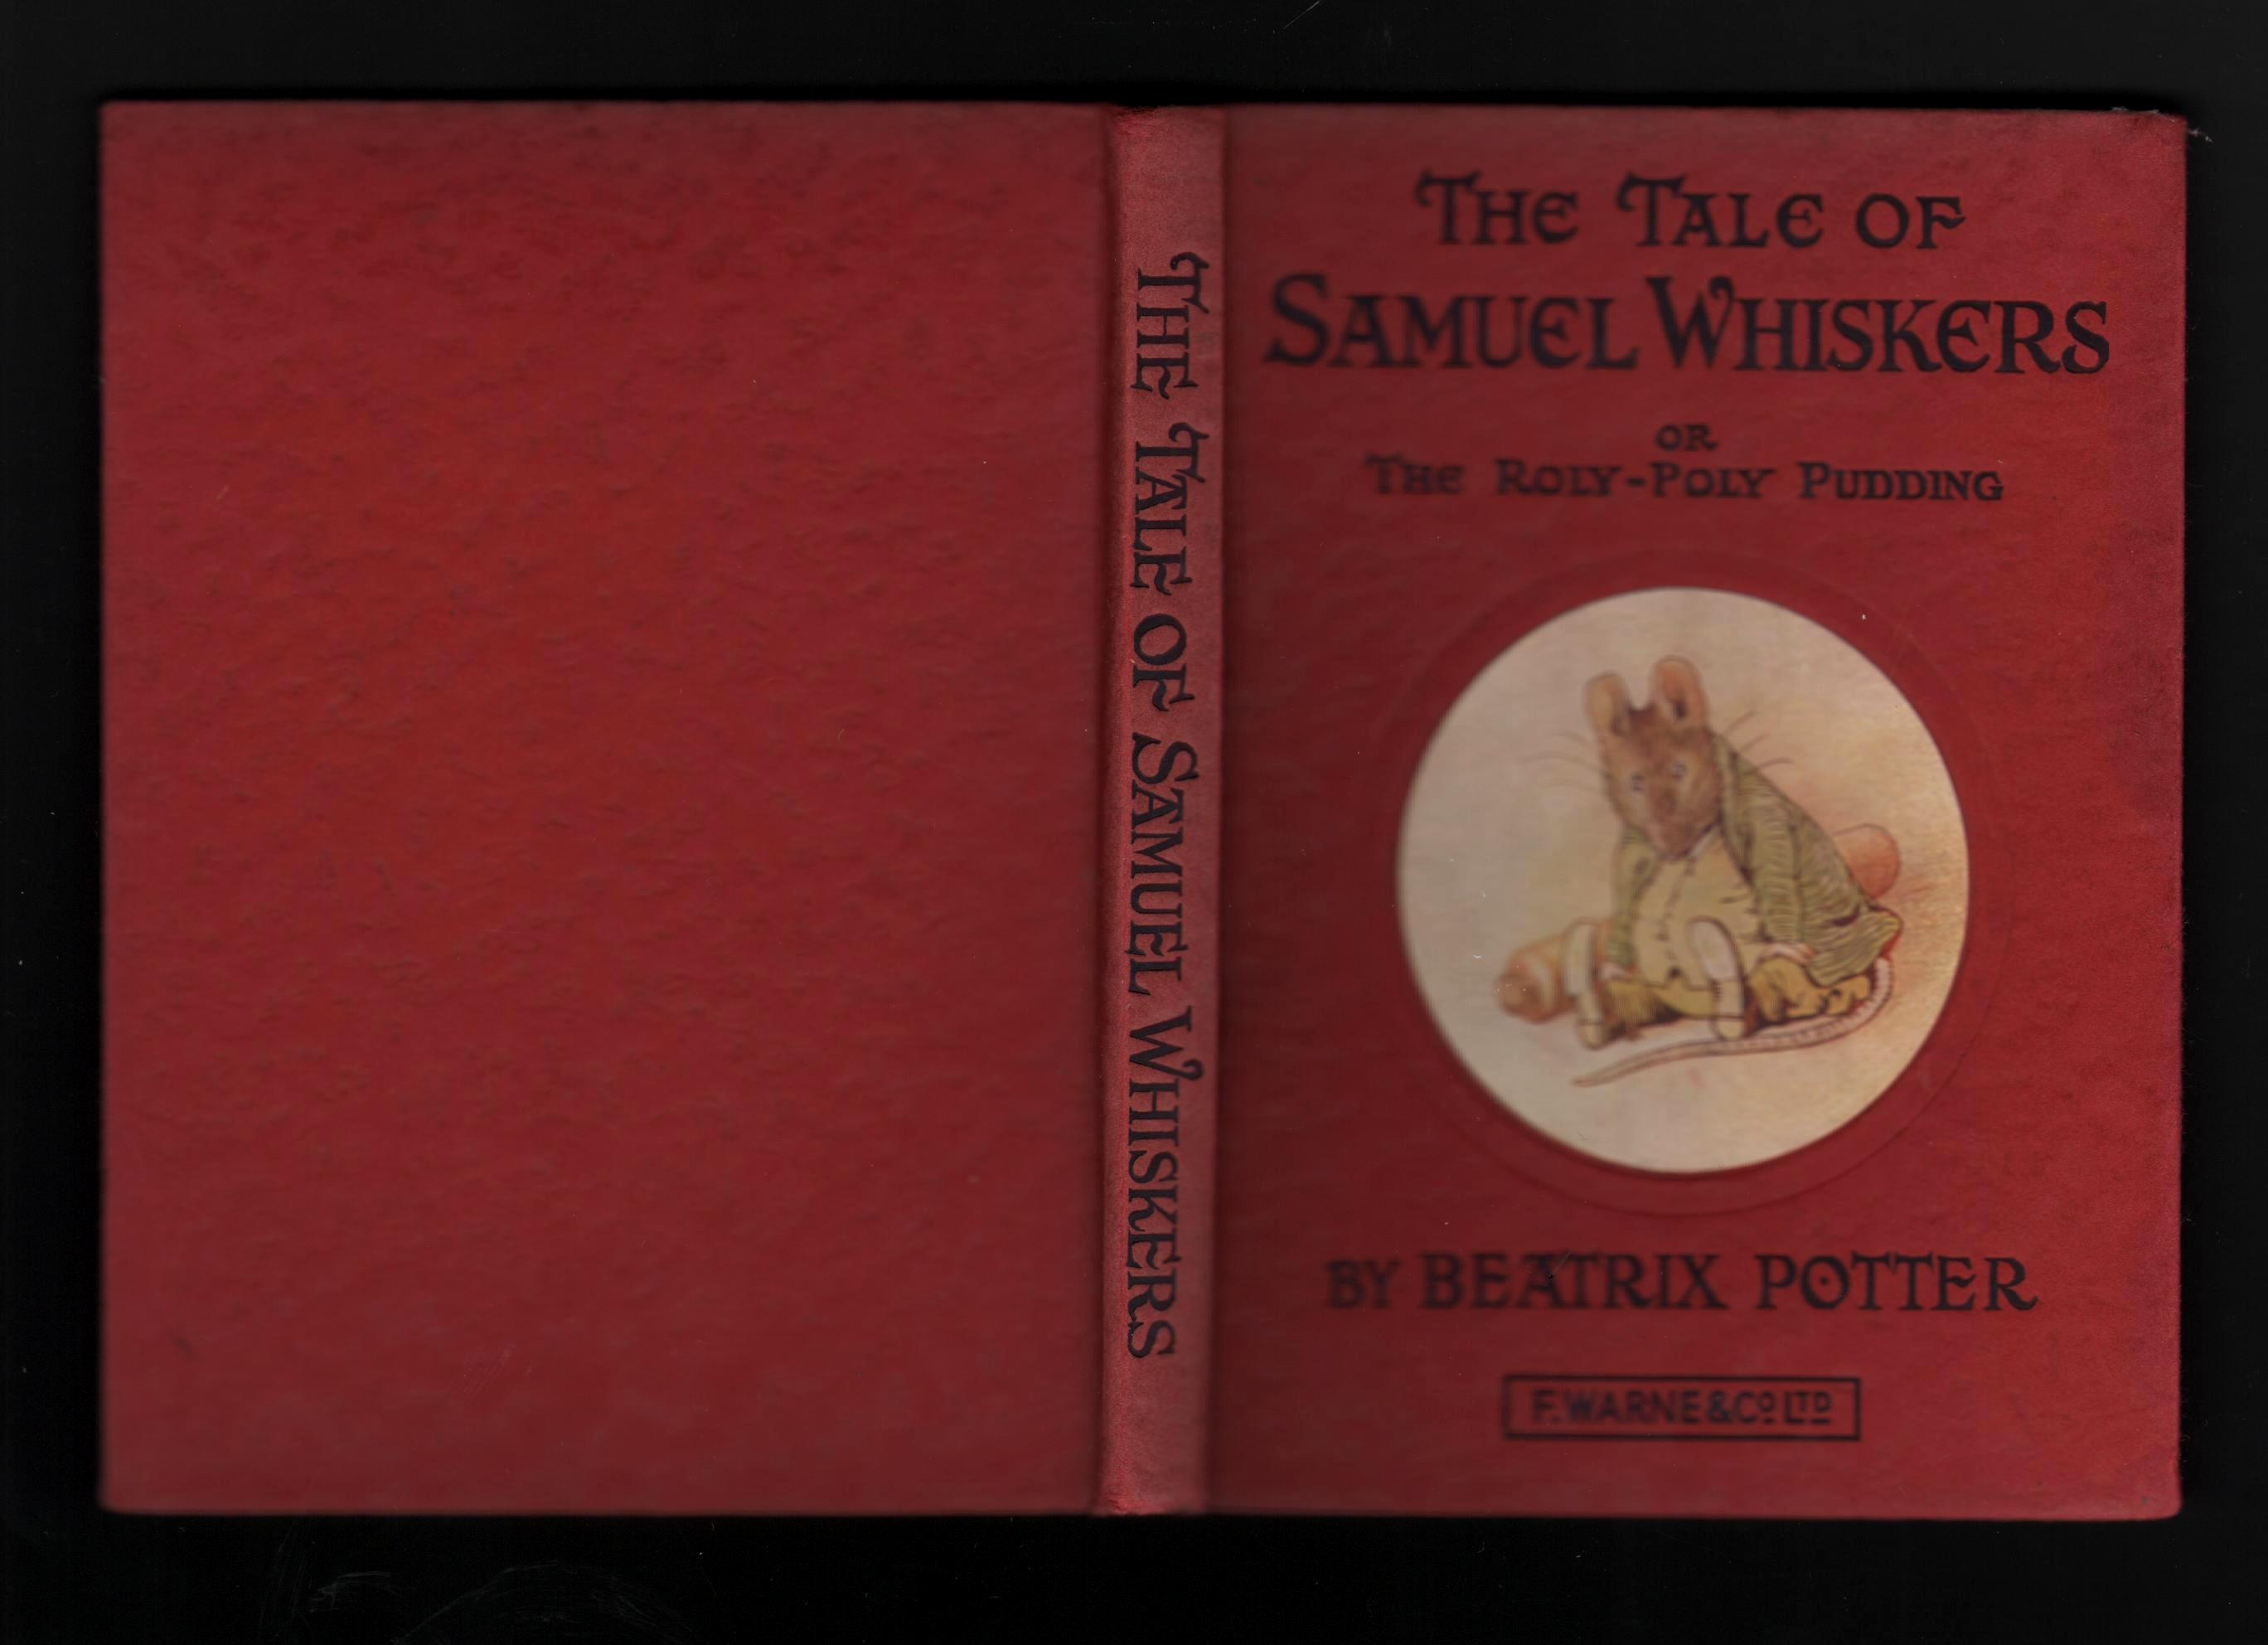 The Tale of Samuel Whiskers or The Roly-Poly Pudding.